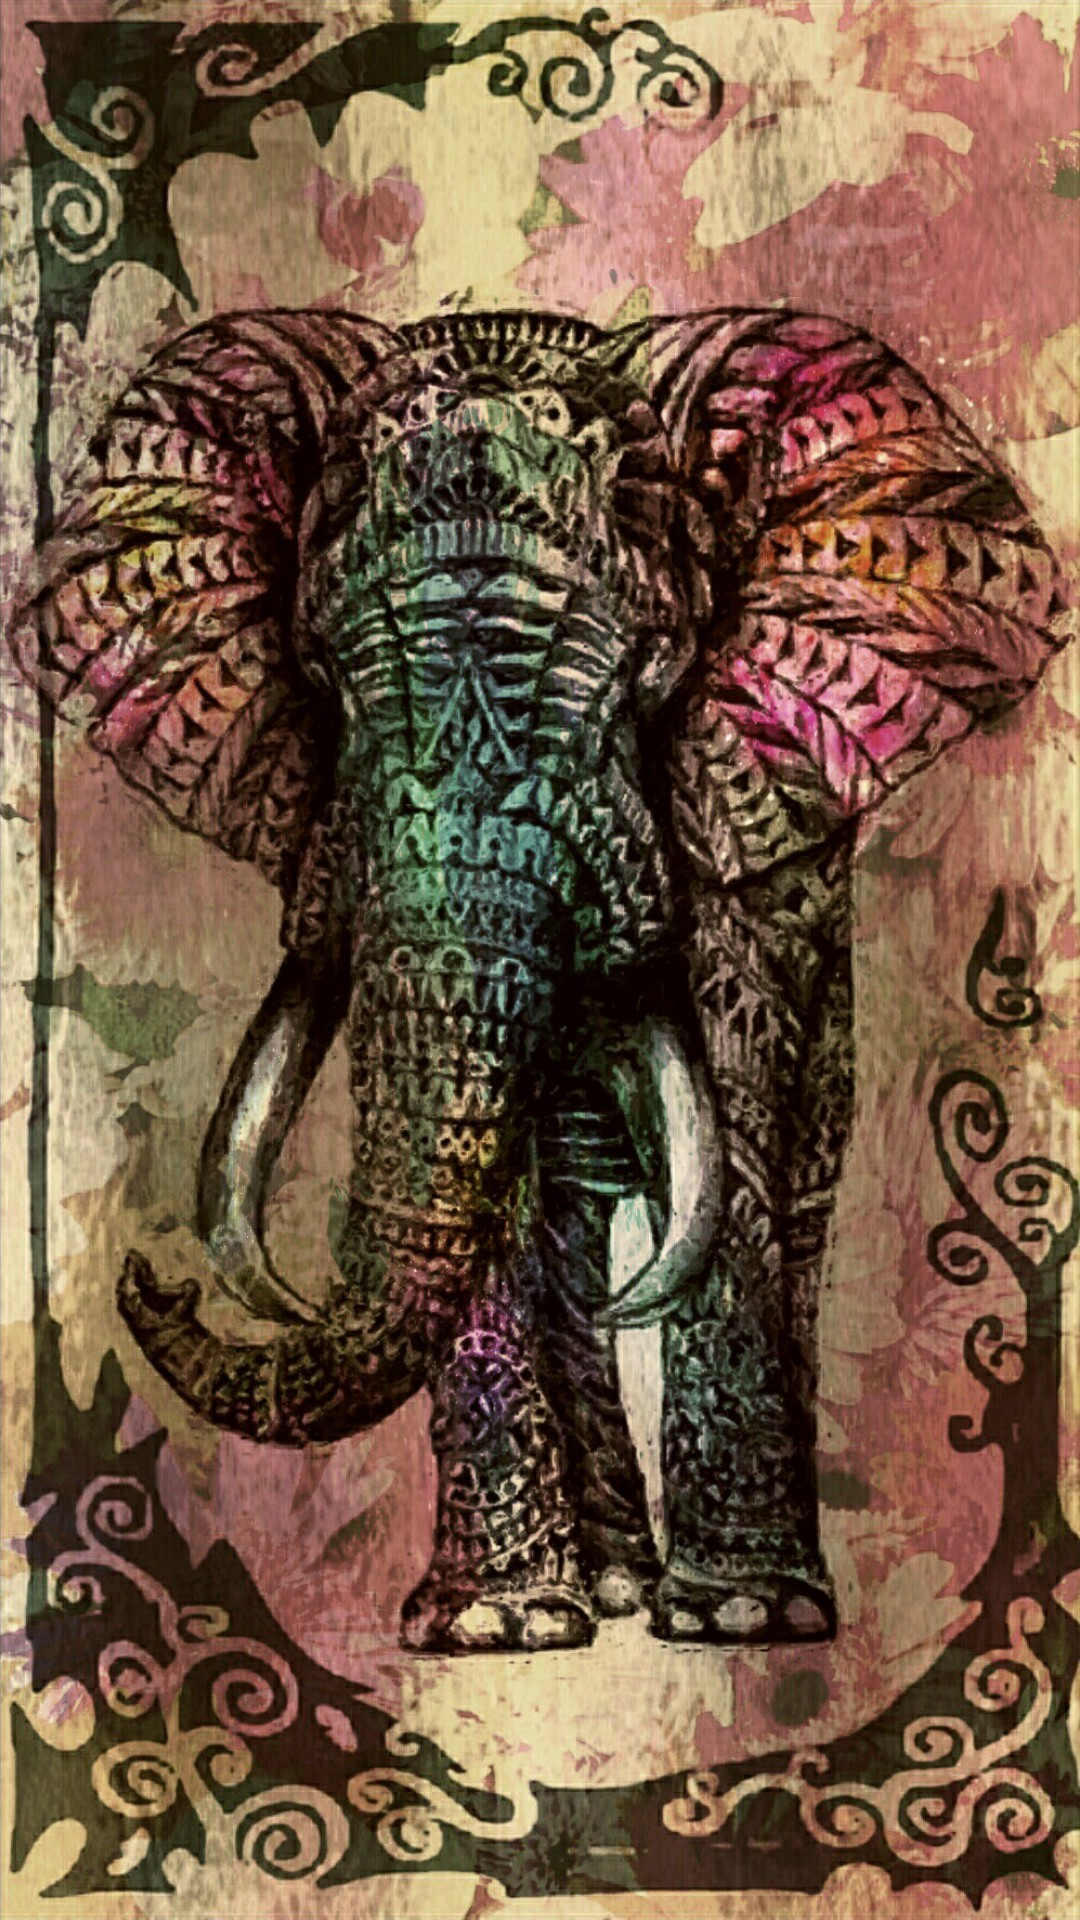 Customize Your Iphone 6 Plus With This High Definition - Best Elephant Wallpaper Iphone - HD Wallpaper